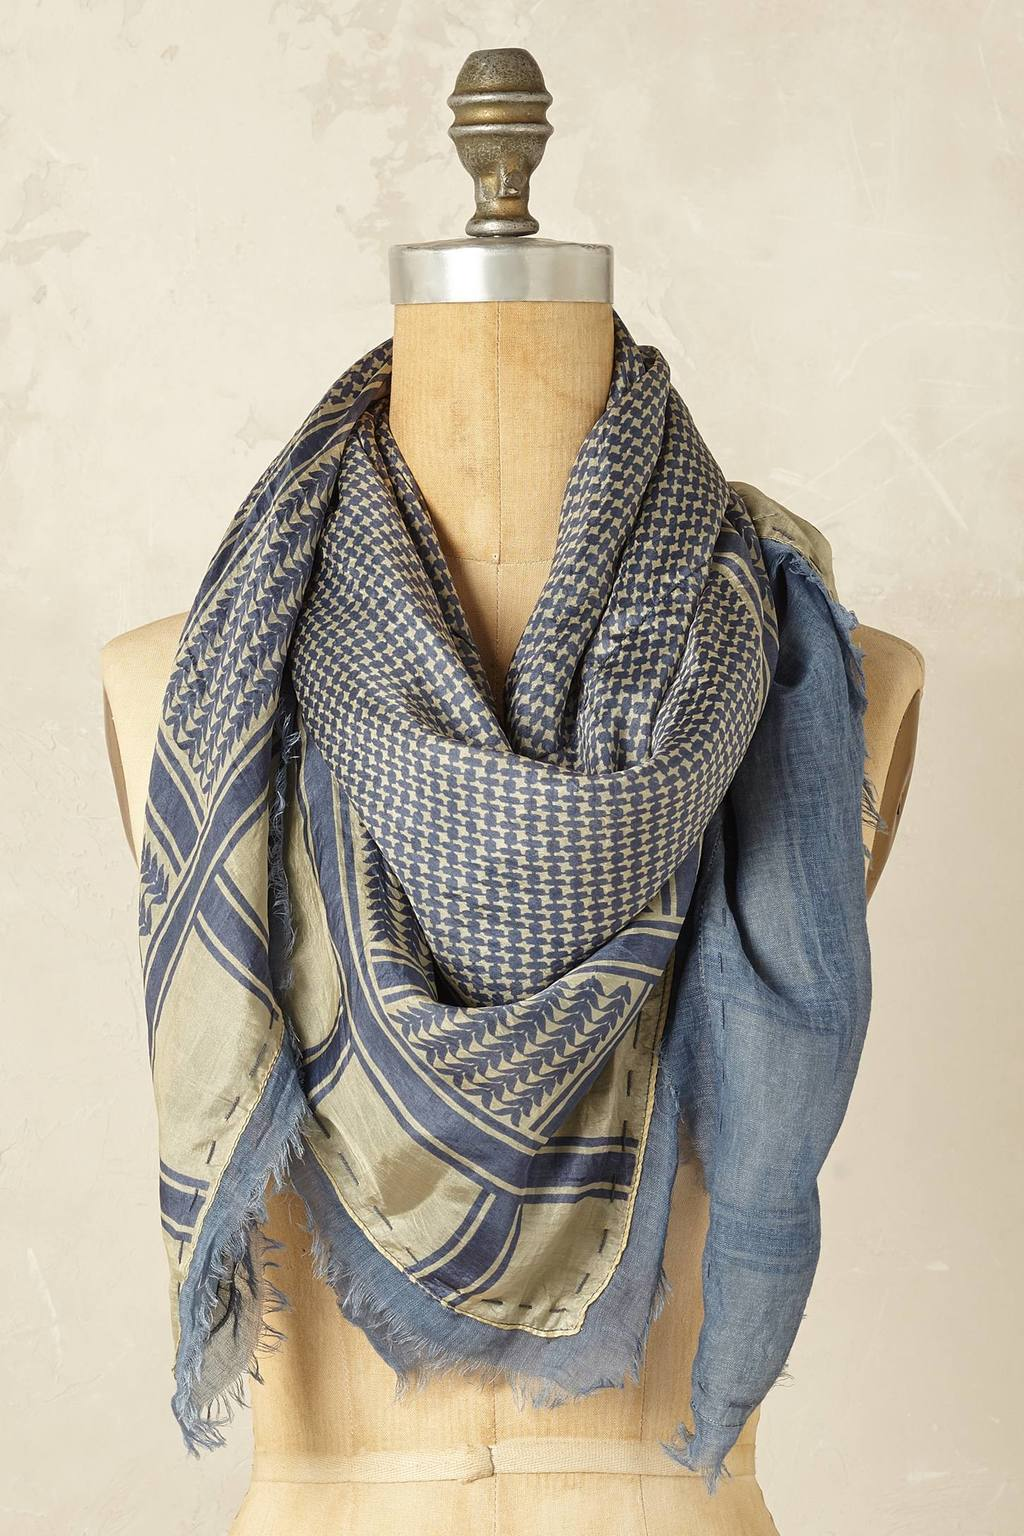 Zandra Silk Front Scarf - predominant colour: denim; occasions: occasion; type of pattern: heavy; style: square; size: large; material: silk; pattern: patterned/print; season: s/s 2016; wardrobe: event